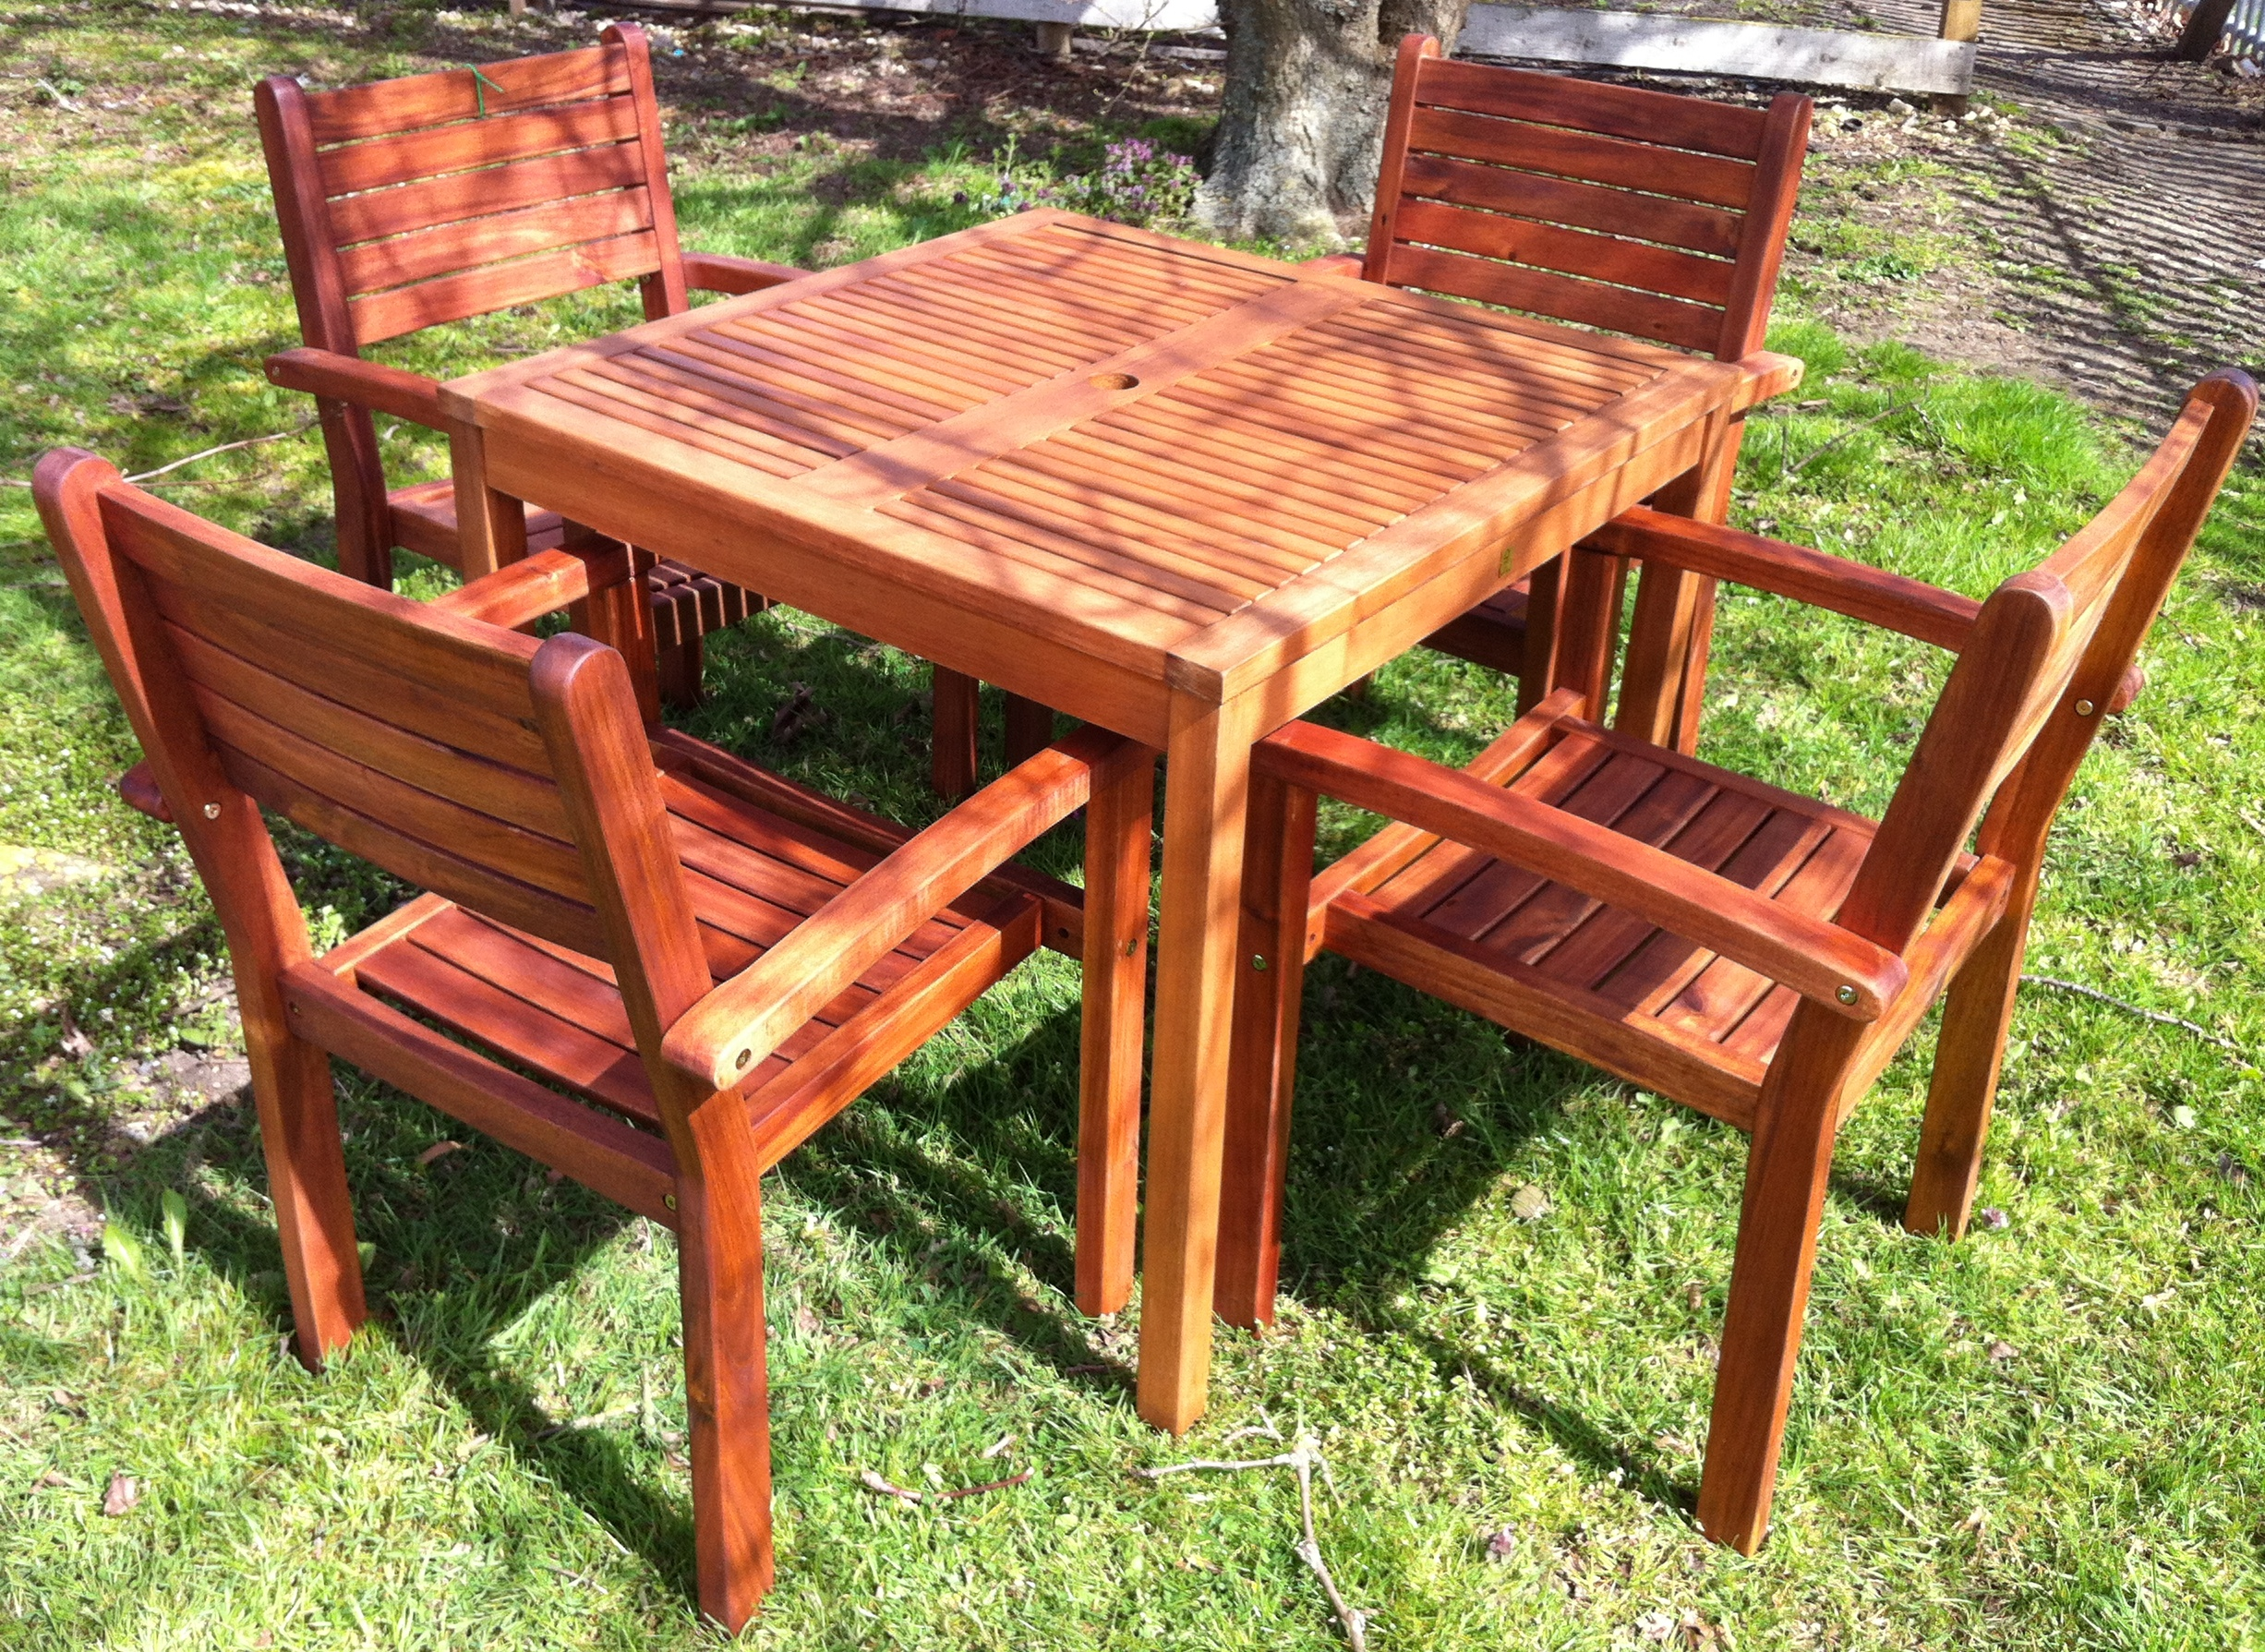 Wooden Garden Furniture Set 4 Chairs And Square Table BBQ Dining Summer Se